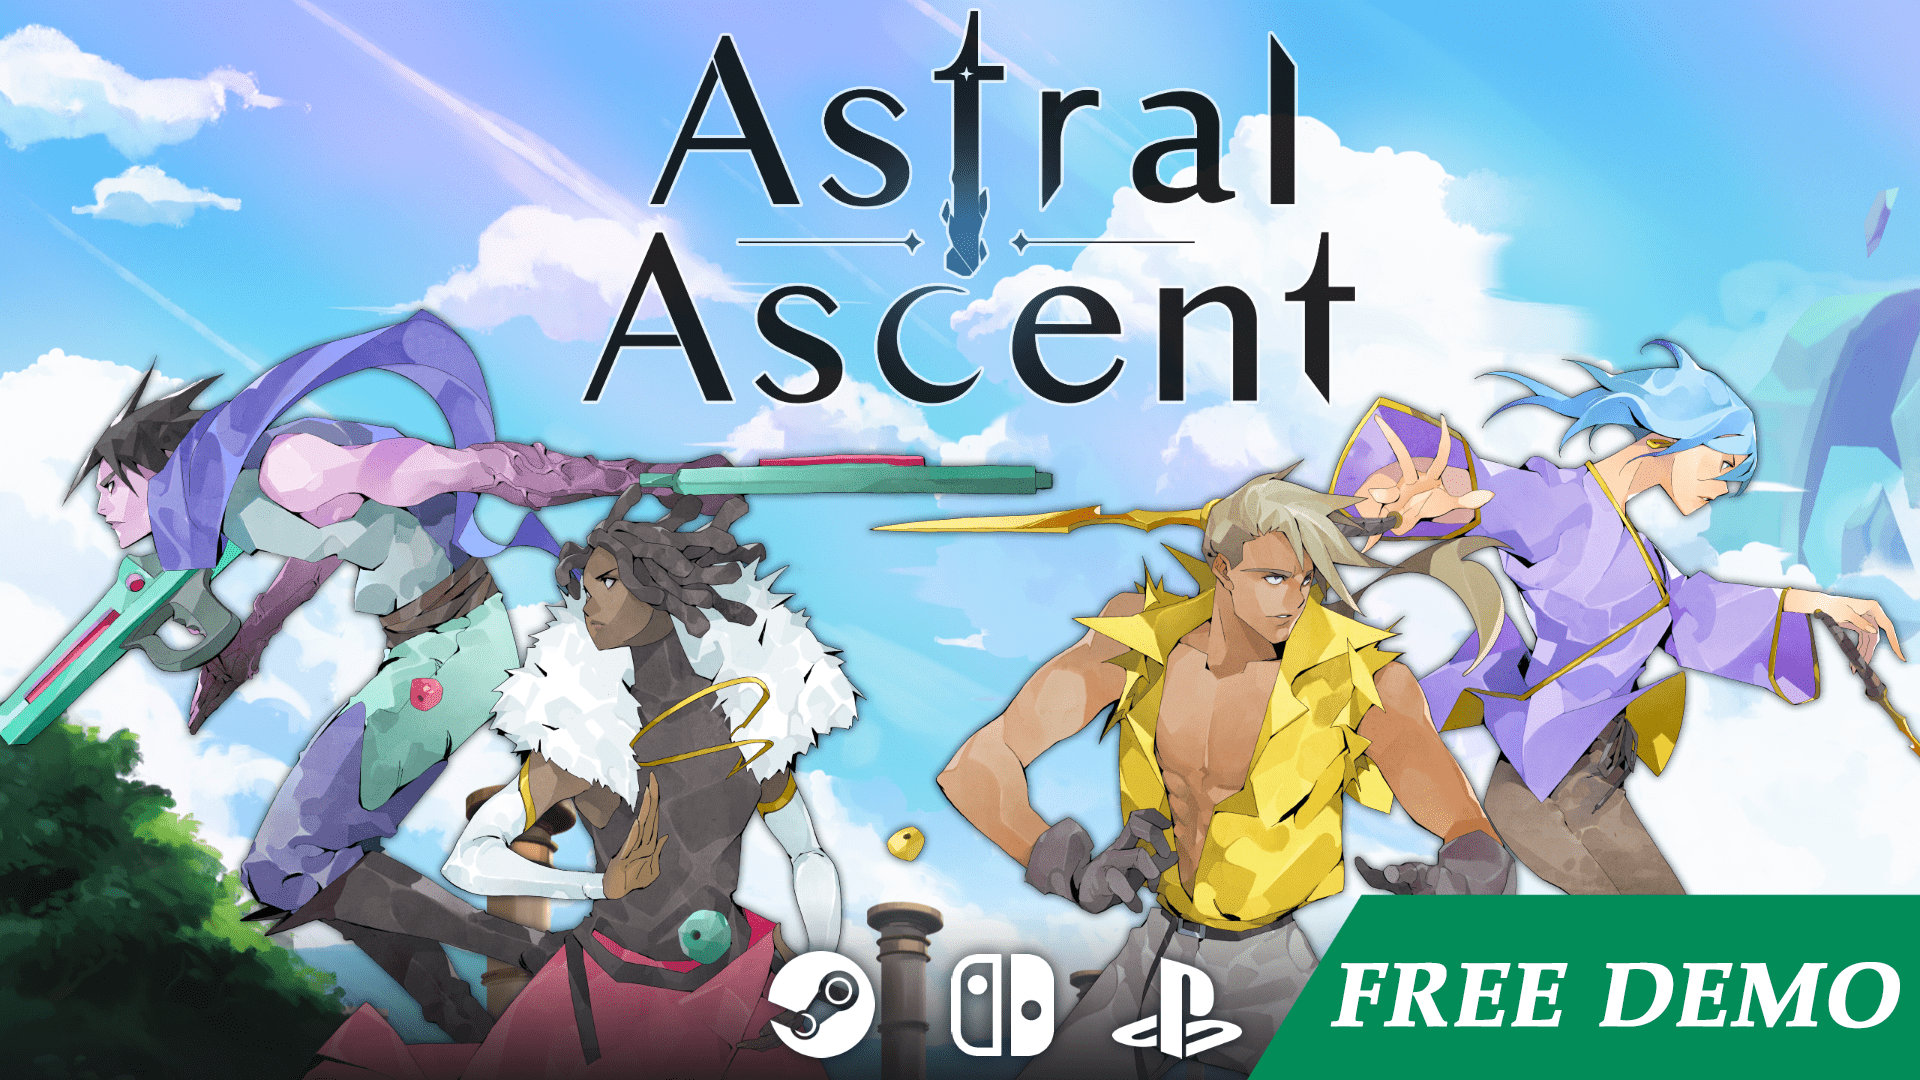 astral ascent-min.png